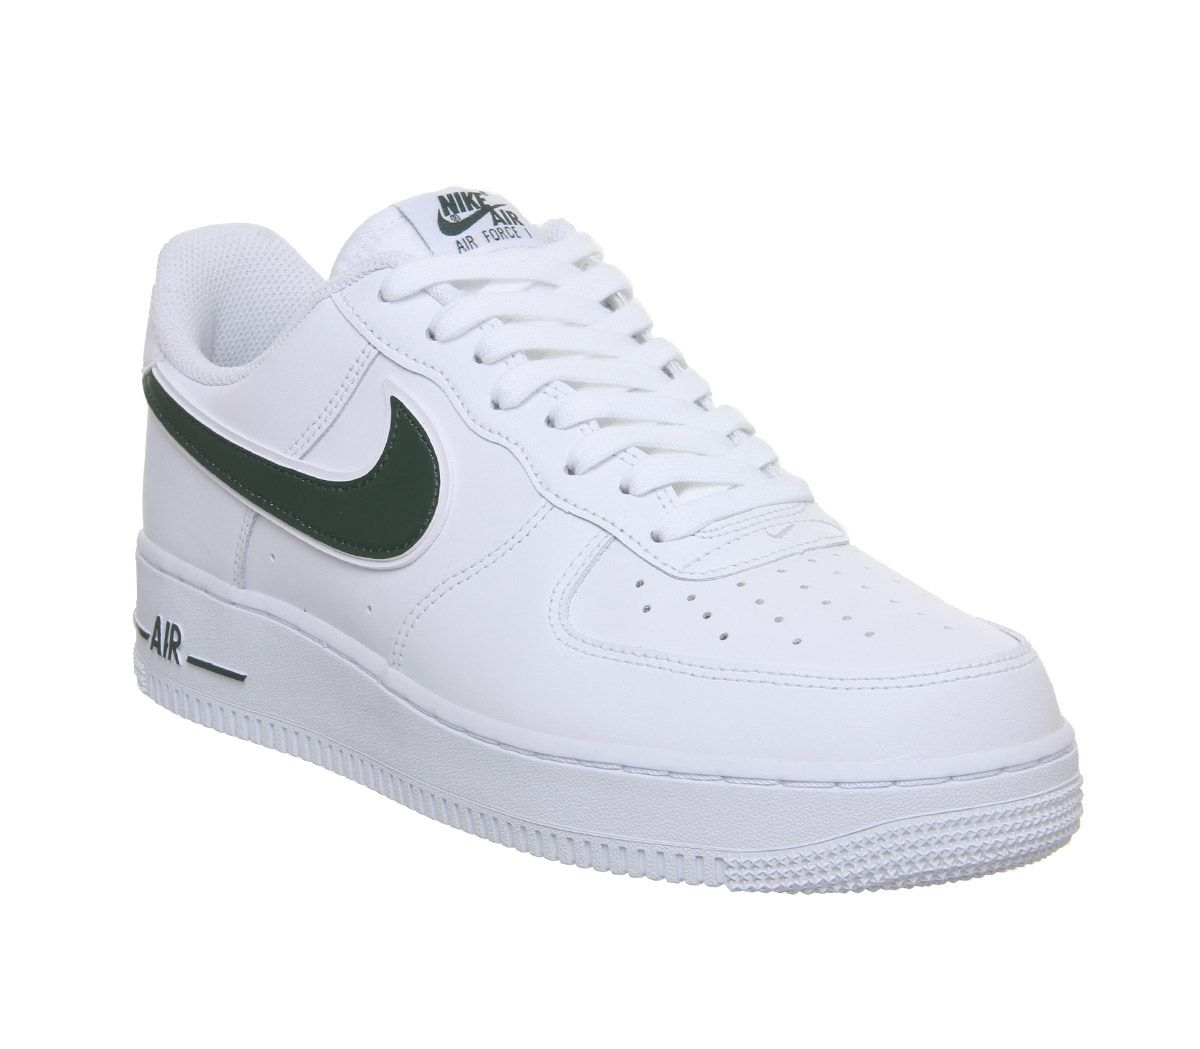 detailed look d27af e0168 Nike Air Force 1  07 Trainers White Cosmic Bonsai - His trainers